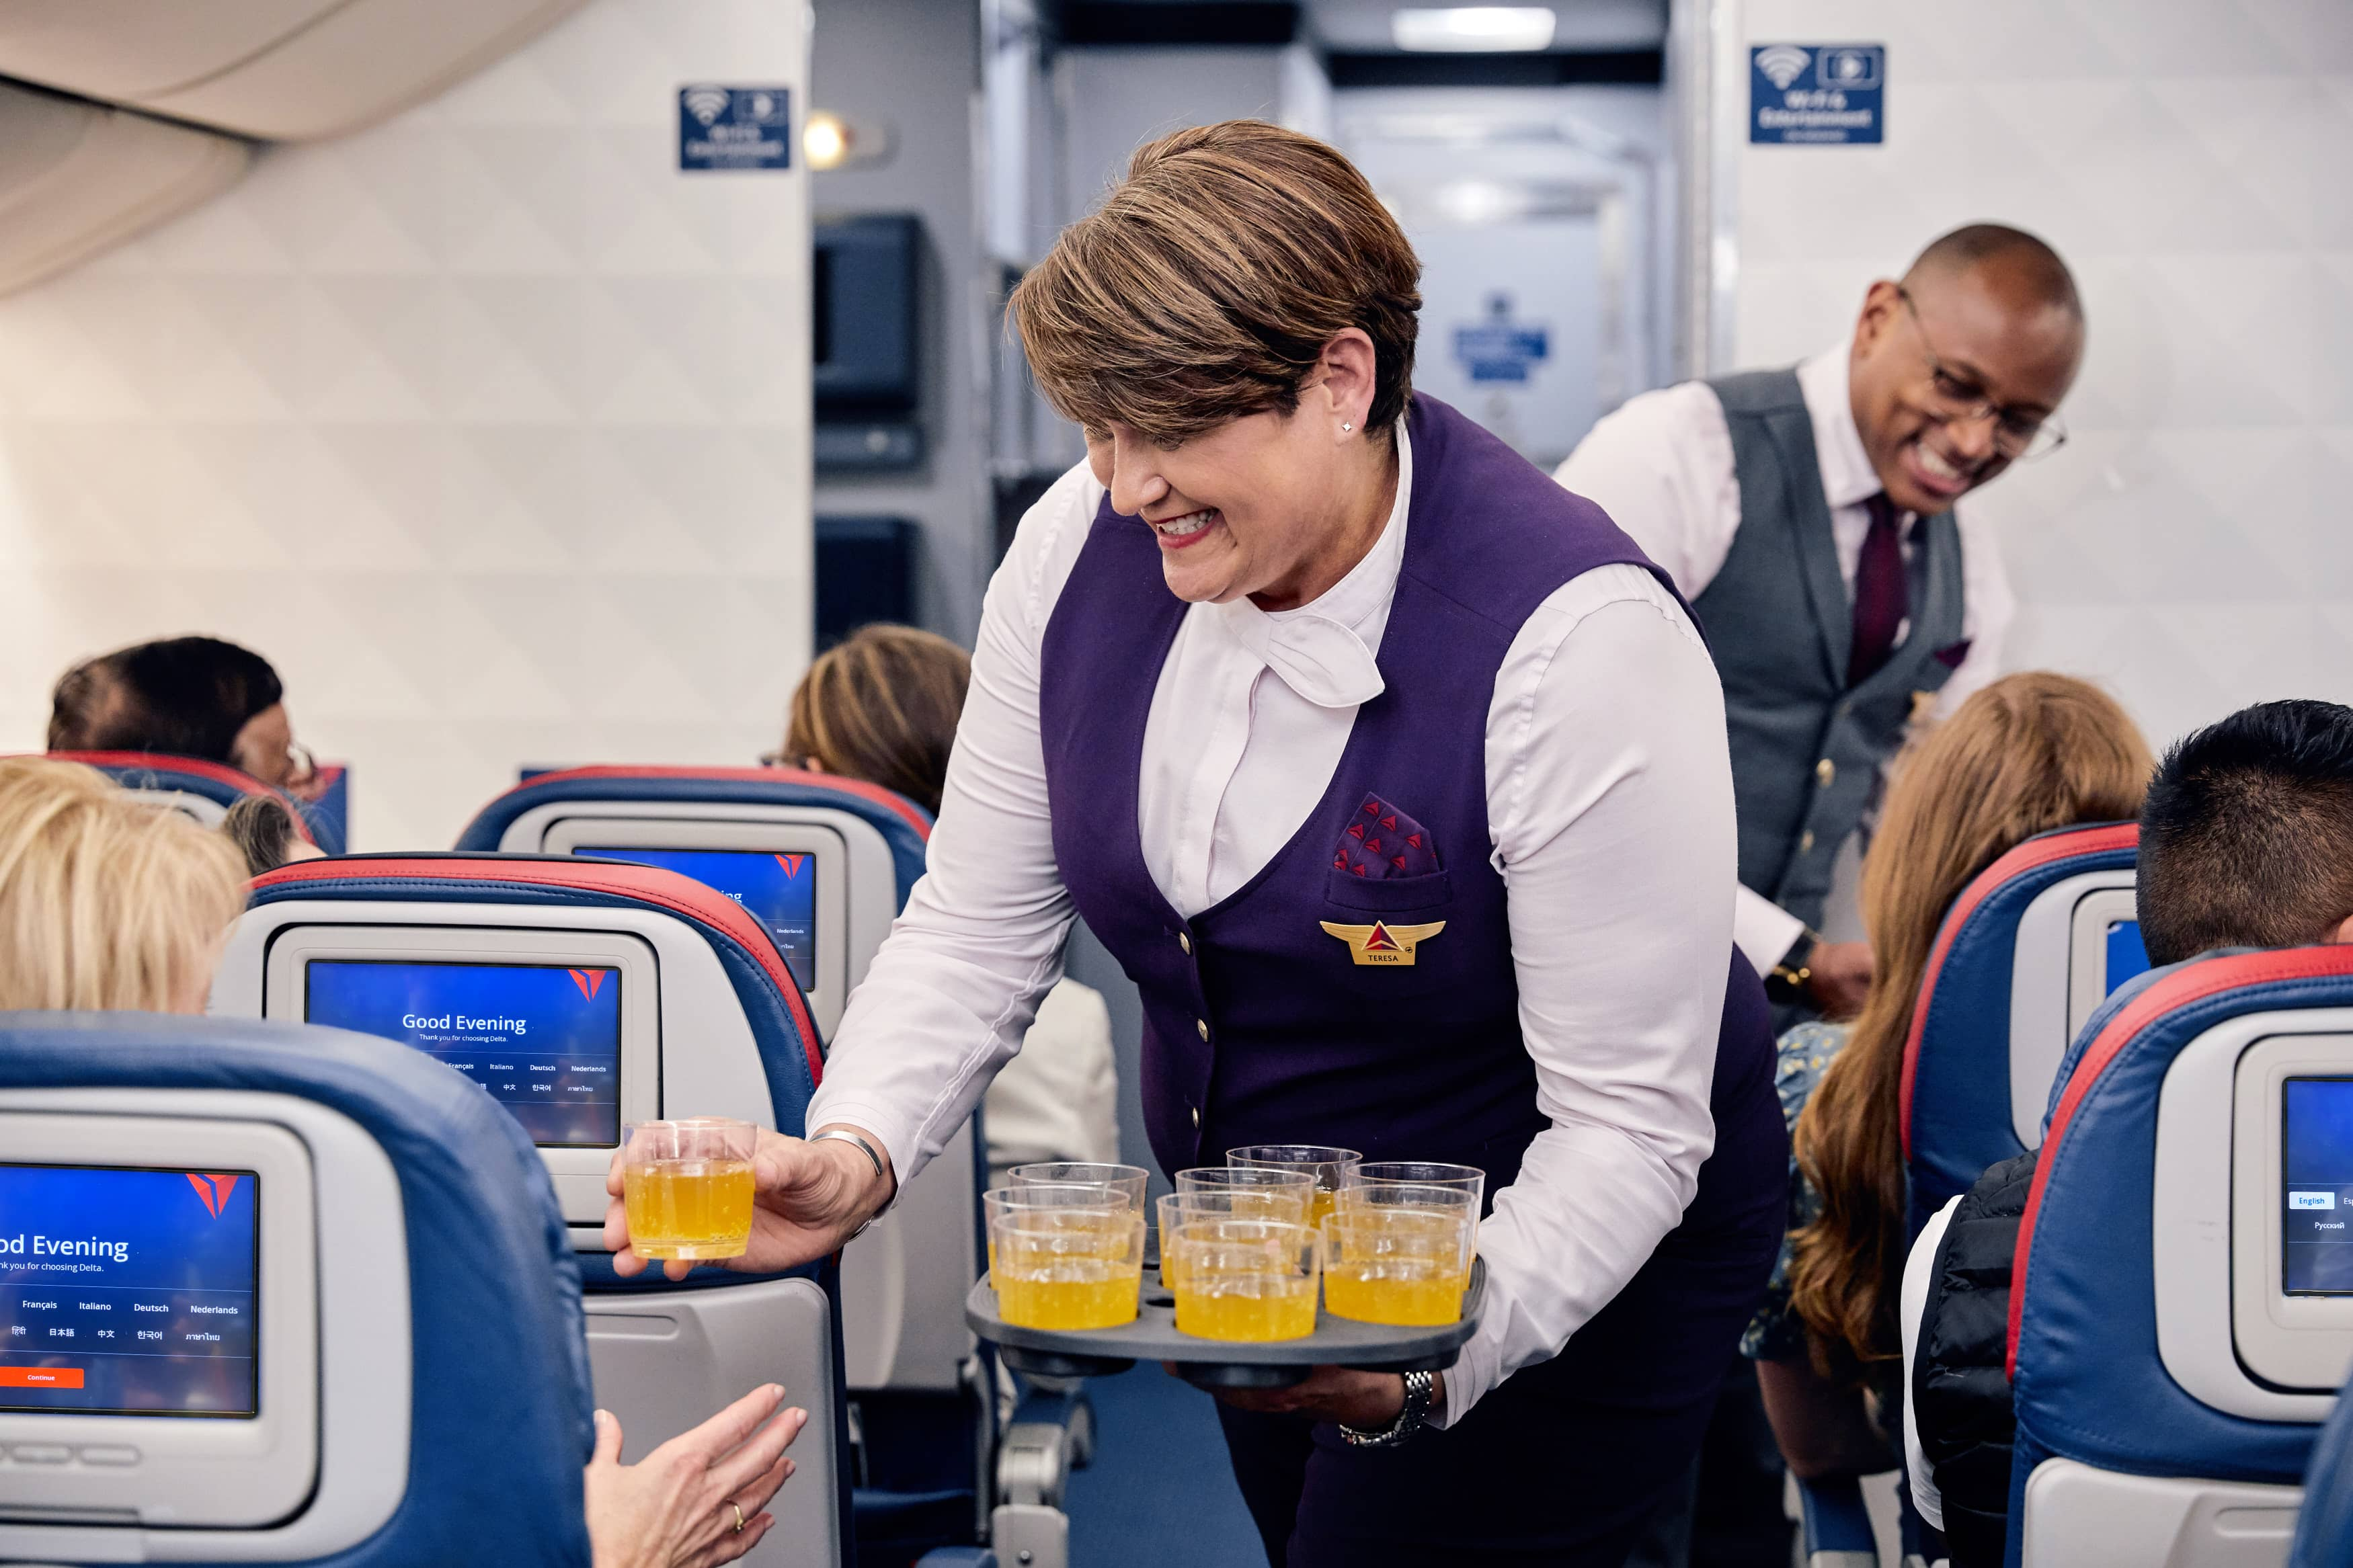 Flight stewardess serving drinks to customer on plane